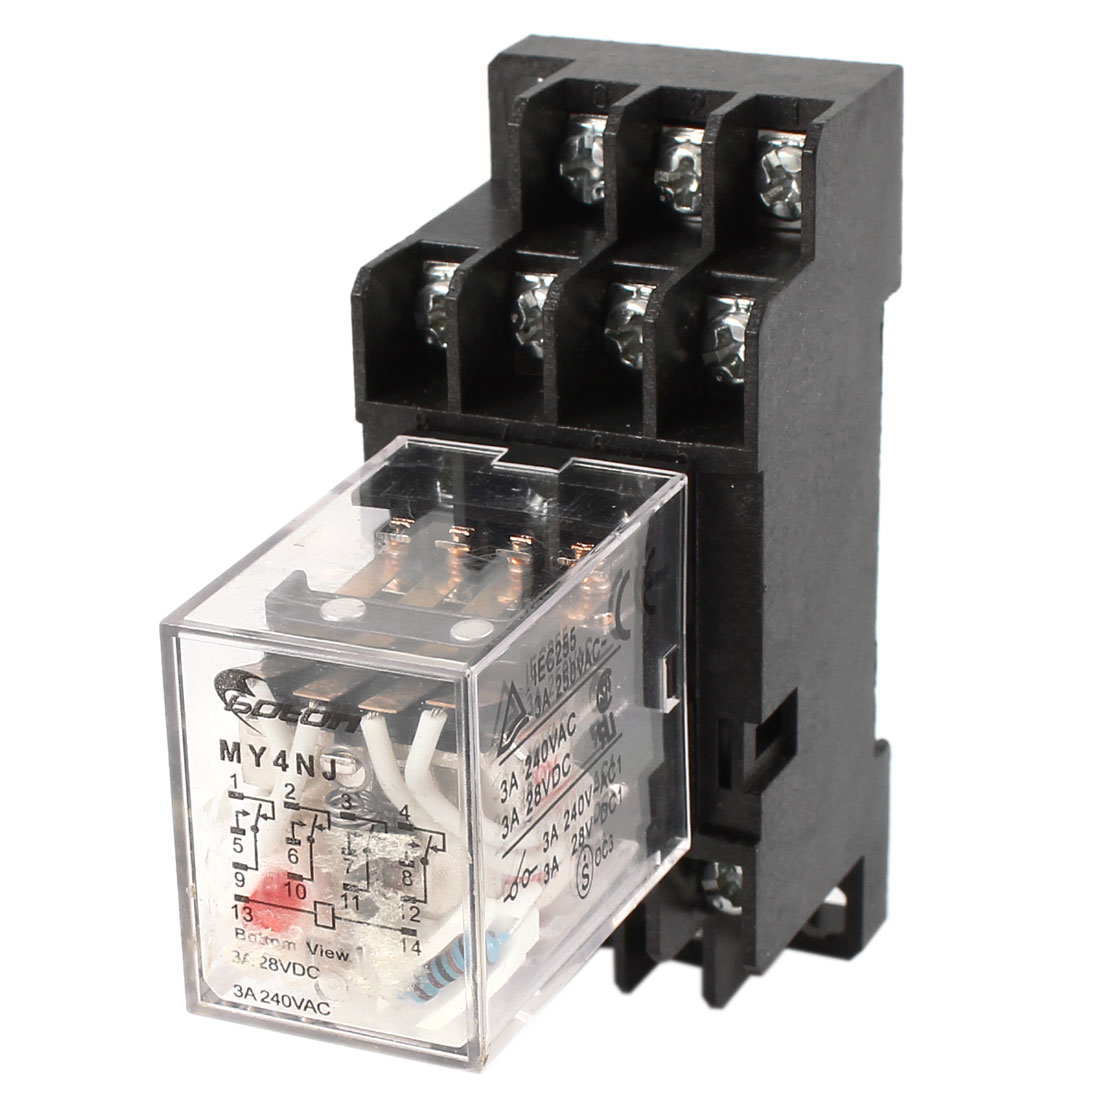 AC220V Coil Voltage 4PDT Electromagnetic Power Relay MY4NJ w Socket